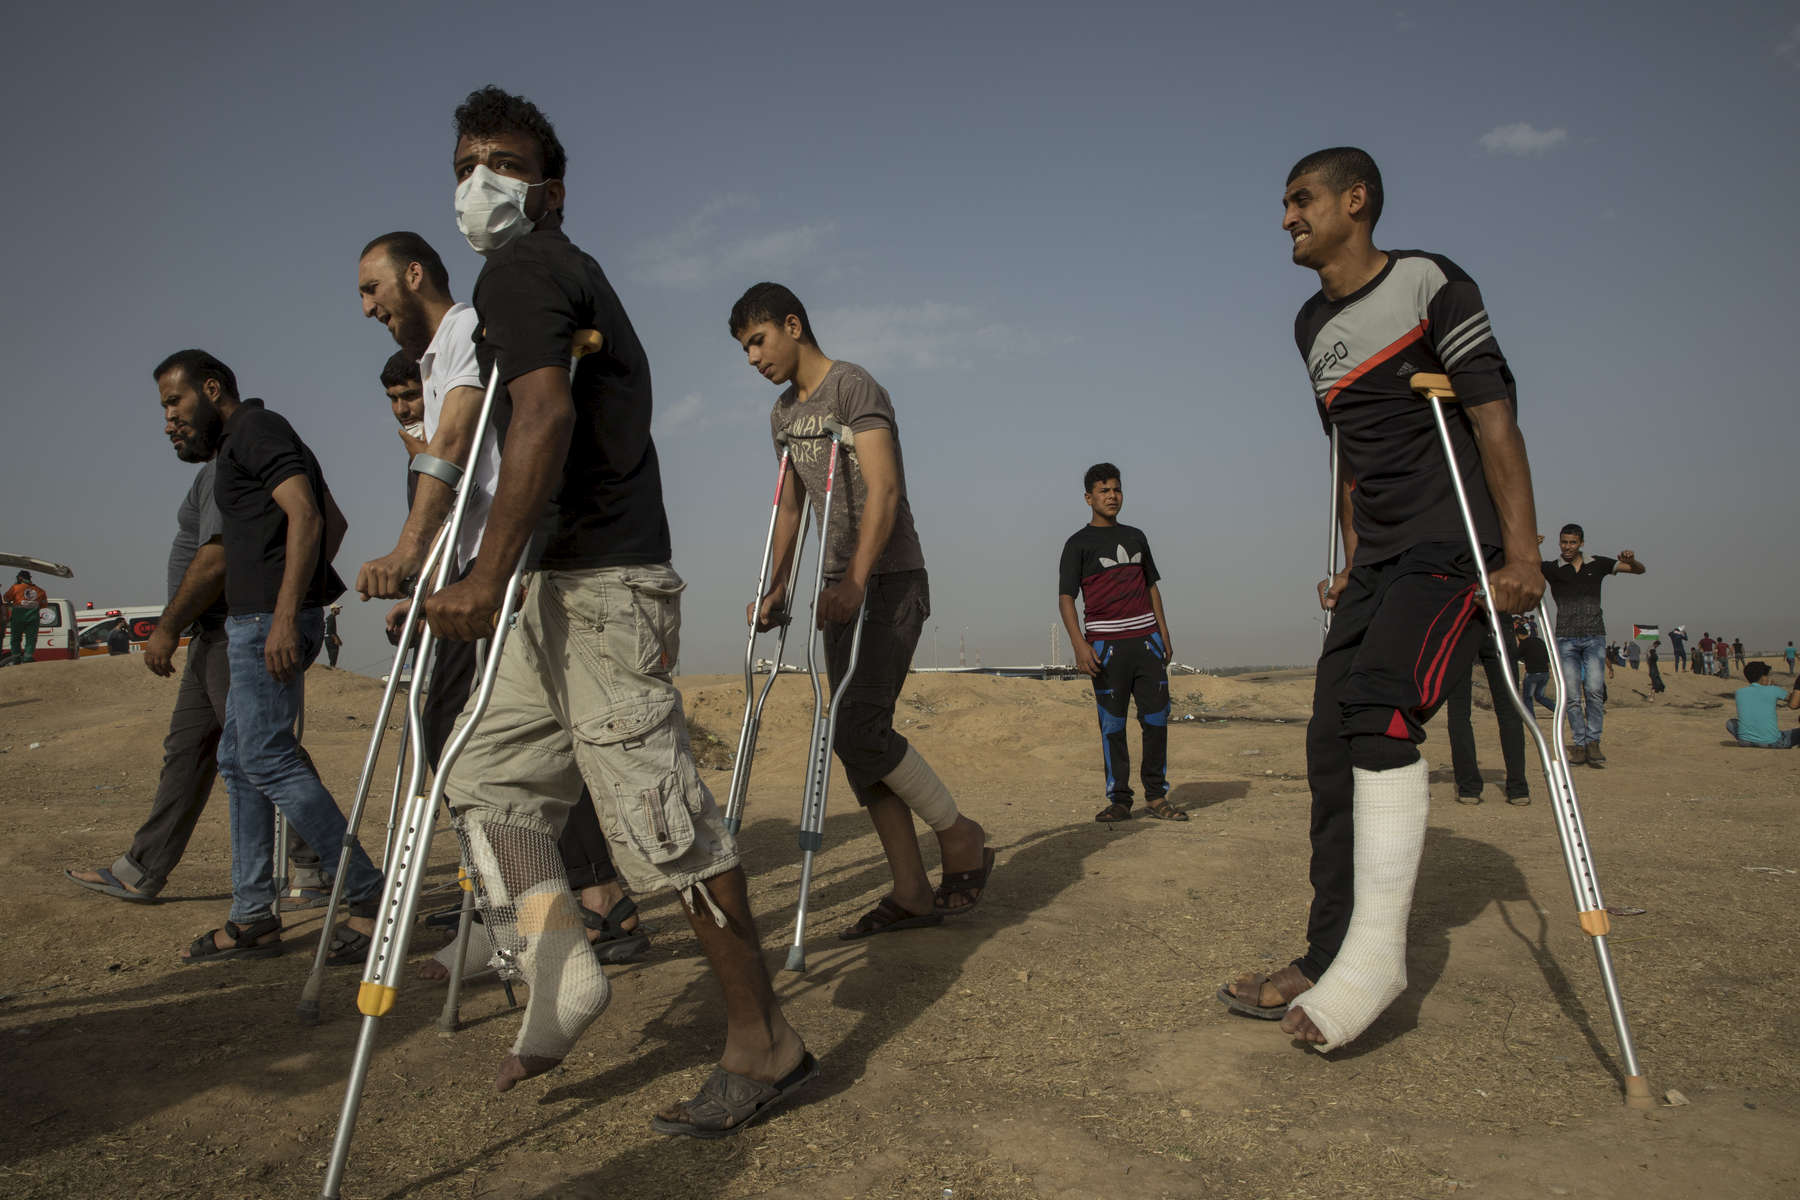 GAZA CITY, GAZA STRIP- MAY 25,2018: Injured protesters are seen at the site near the Israel-Gaza border on May 25,2018 in Gaza city, Gaza strip. At least 110 Palestinians were killed between March 30-May 15th. According to the International Committee of the Red Cross (ICRC), 13,000 Palestinians were wounded (as of June 19, 2018), the majority severely, with some 1,400 struck by three to five bullets. No Israelis were physically harmed during this time period, Israel's use of deadly force was condemned during the UN general assembly on June 13 th along with other human rights organizations. Everyone is well aware that Gaza's two million inhabitants are trapped in a cycle of violence and poverty, created by policies and political decisions on both sides. The problems and complications affecting Gaza today are overwhelming. The world, seemingly accustomed to the suffering of the Gazan people turns a blind eye. (Photo by Paula Bronstein )